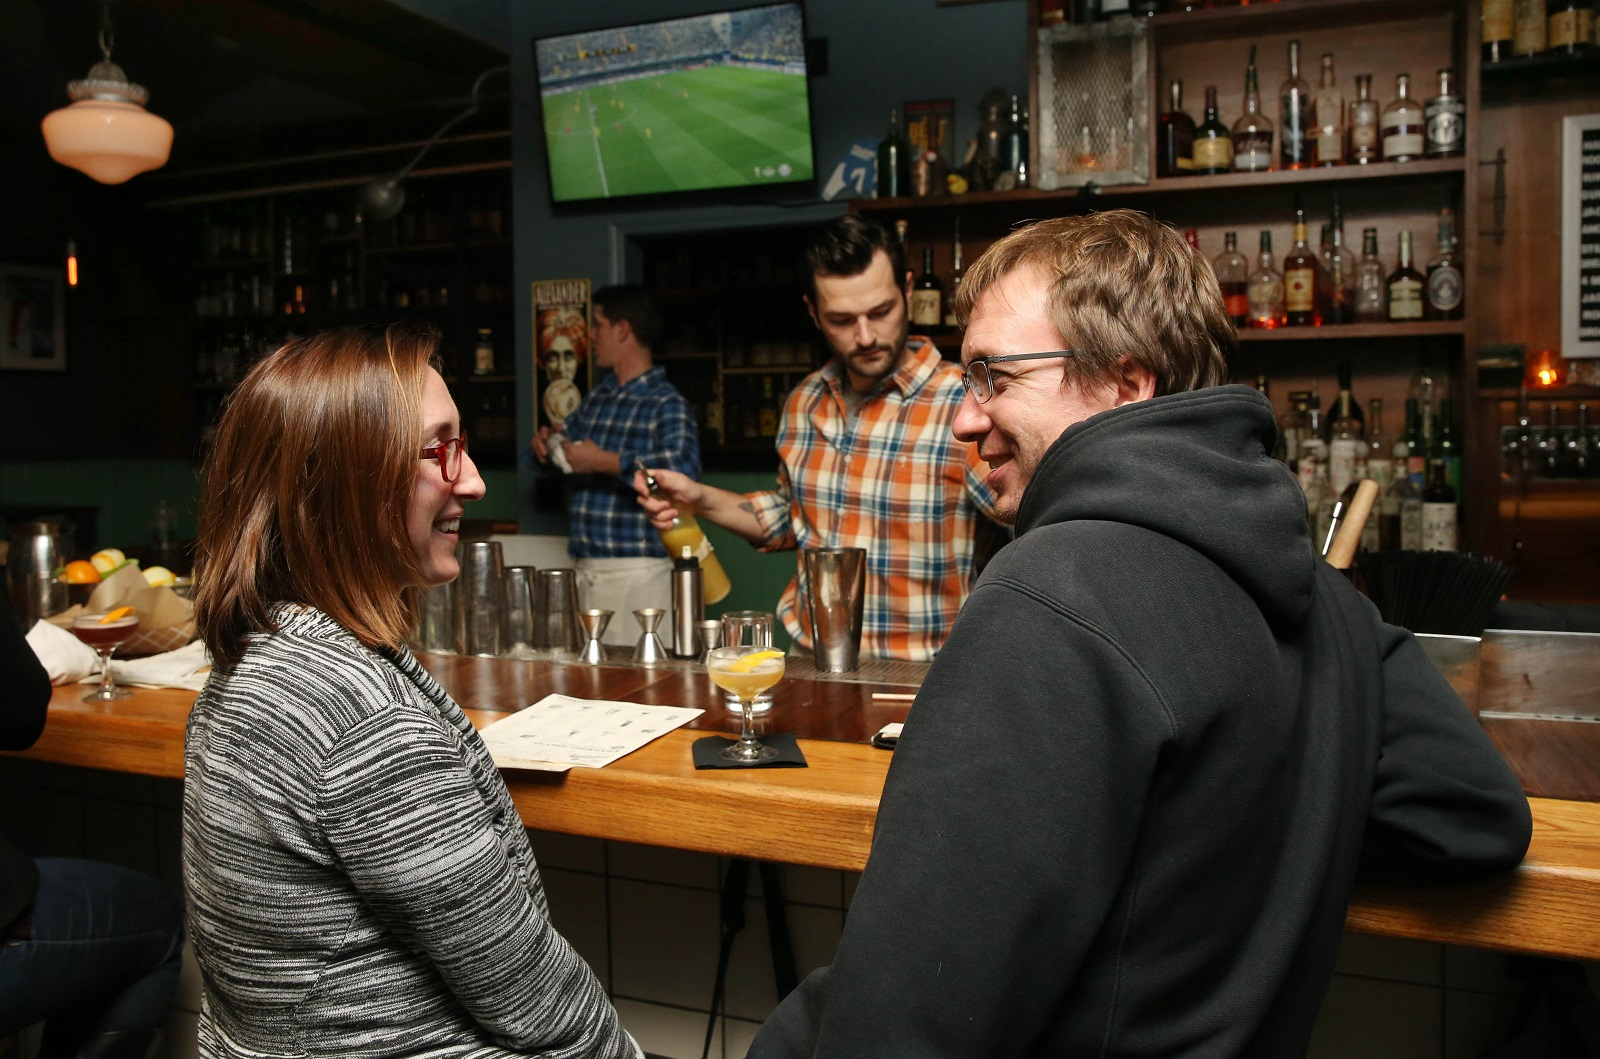 Sarah Quintal, left, and Scott Roche of Buffalo, hang out while a soccer game airs on the TVs at Ballyhoo. (Sharon Cantillon/Buffalo News)